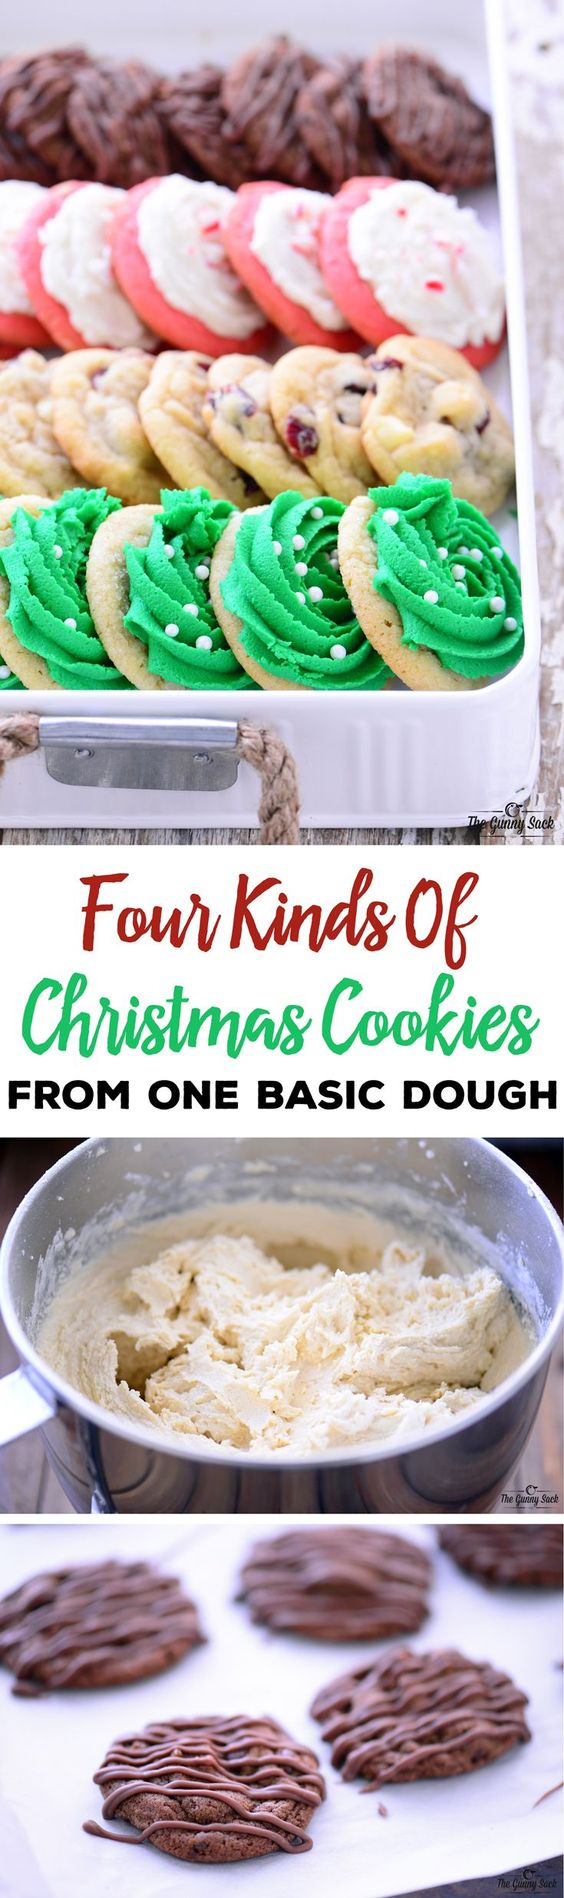 How far in advance to bake christmas cookies